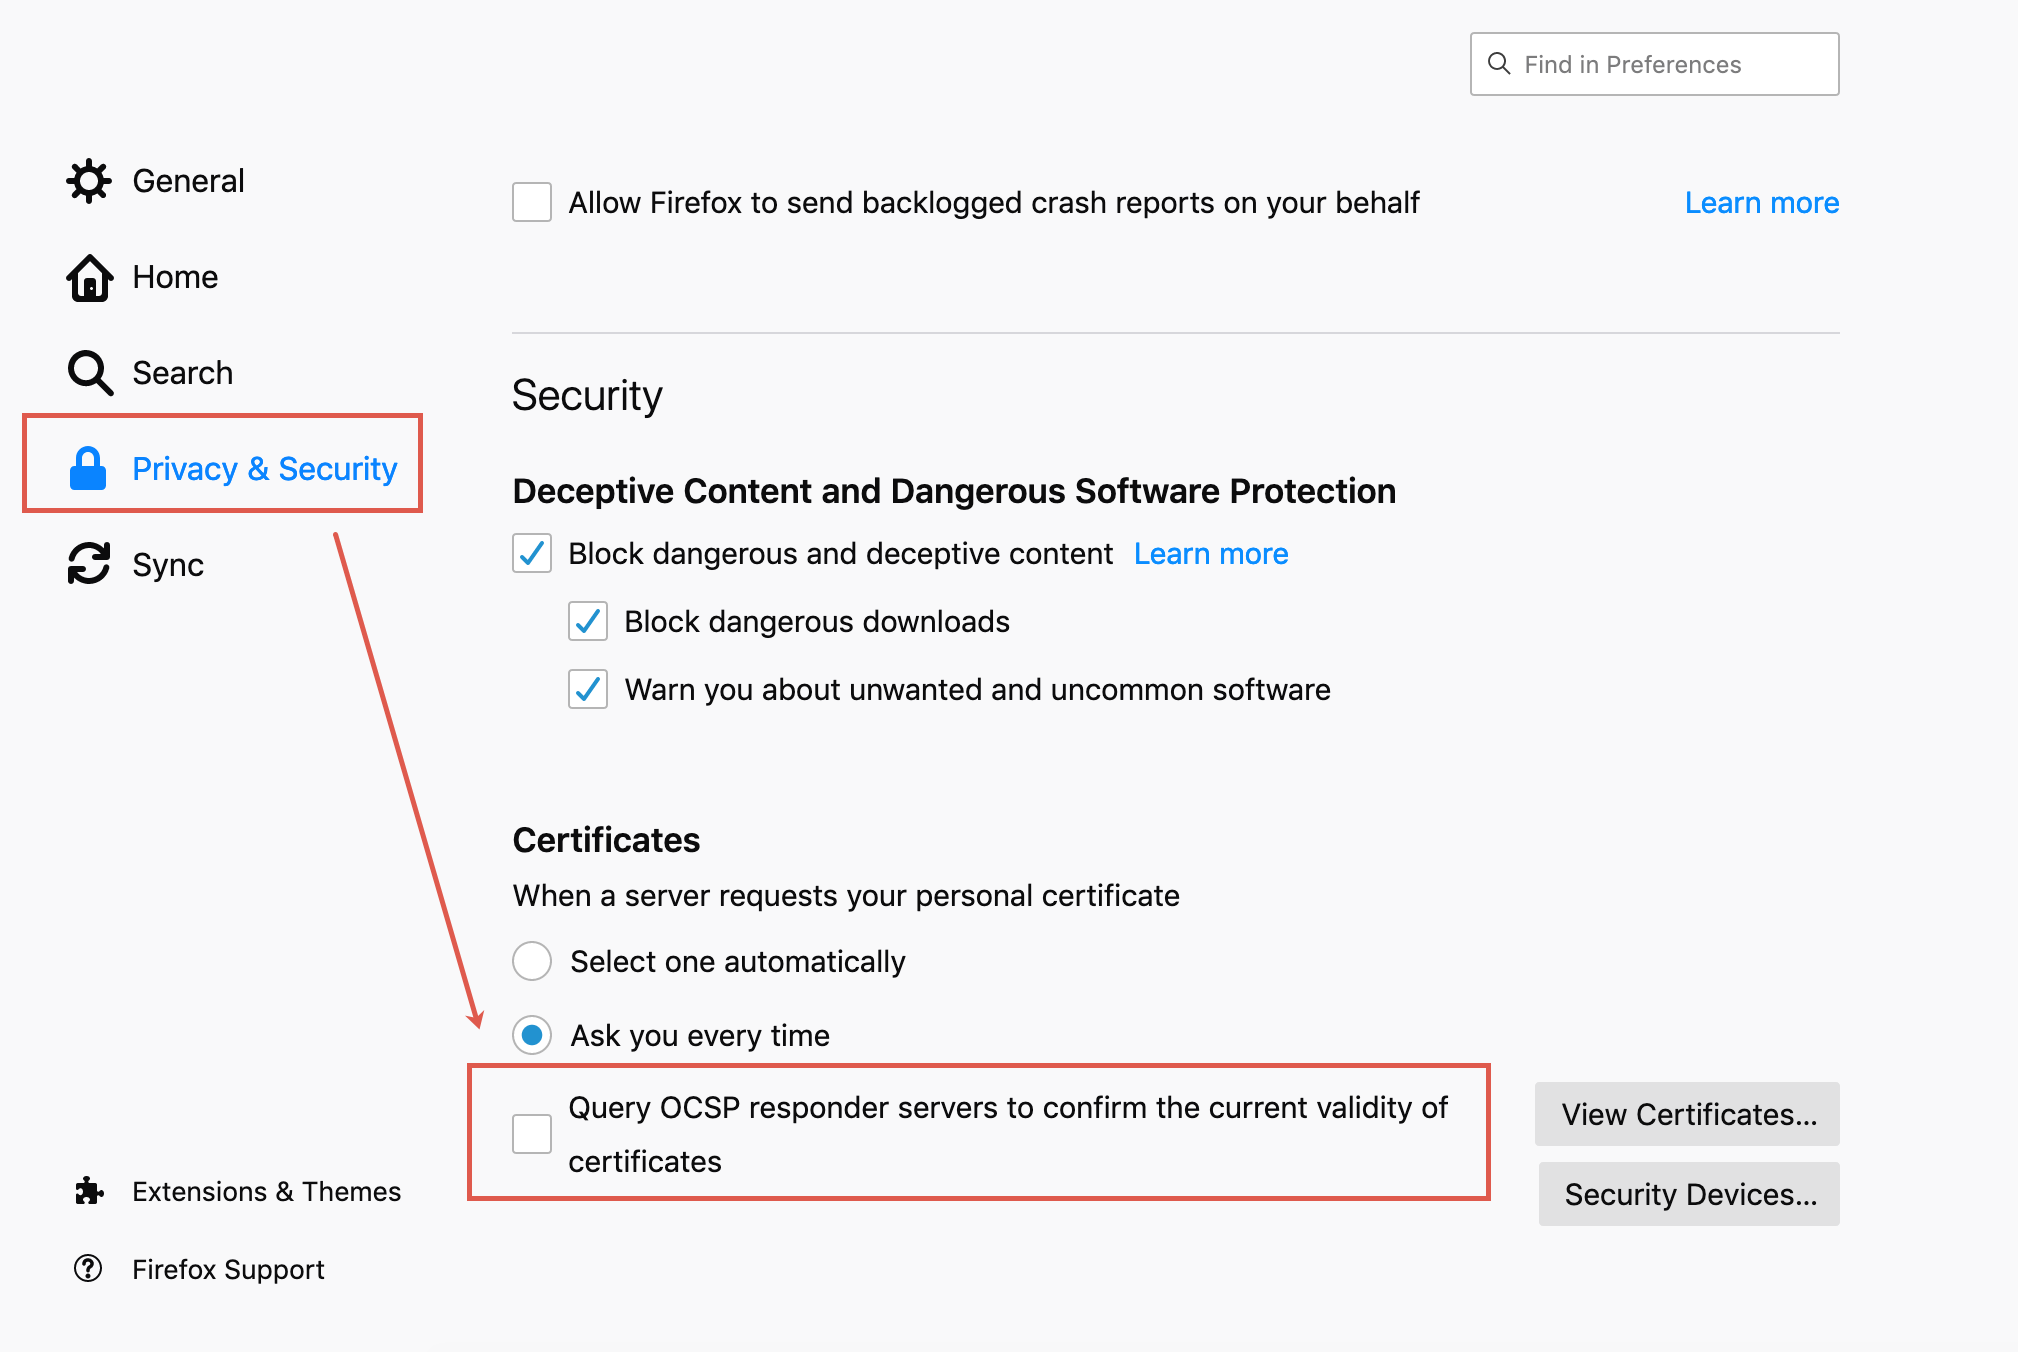 Uncheck the box associated with Query OCSP responder servers to confirm the current validity of certificates.